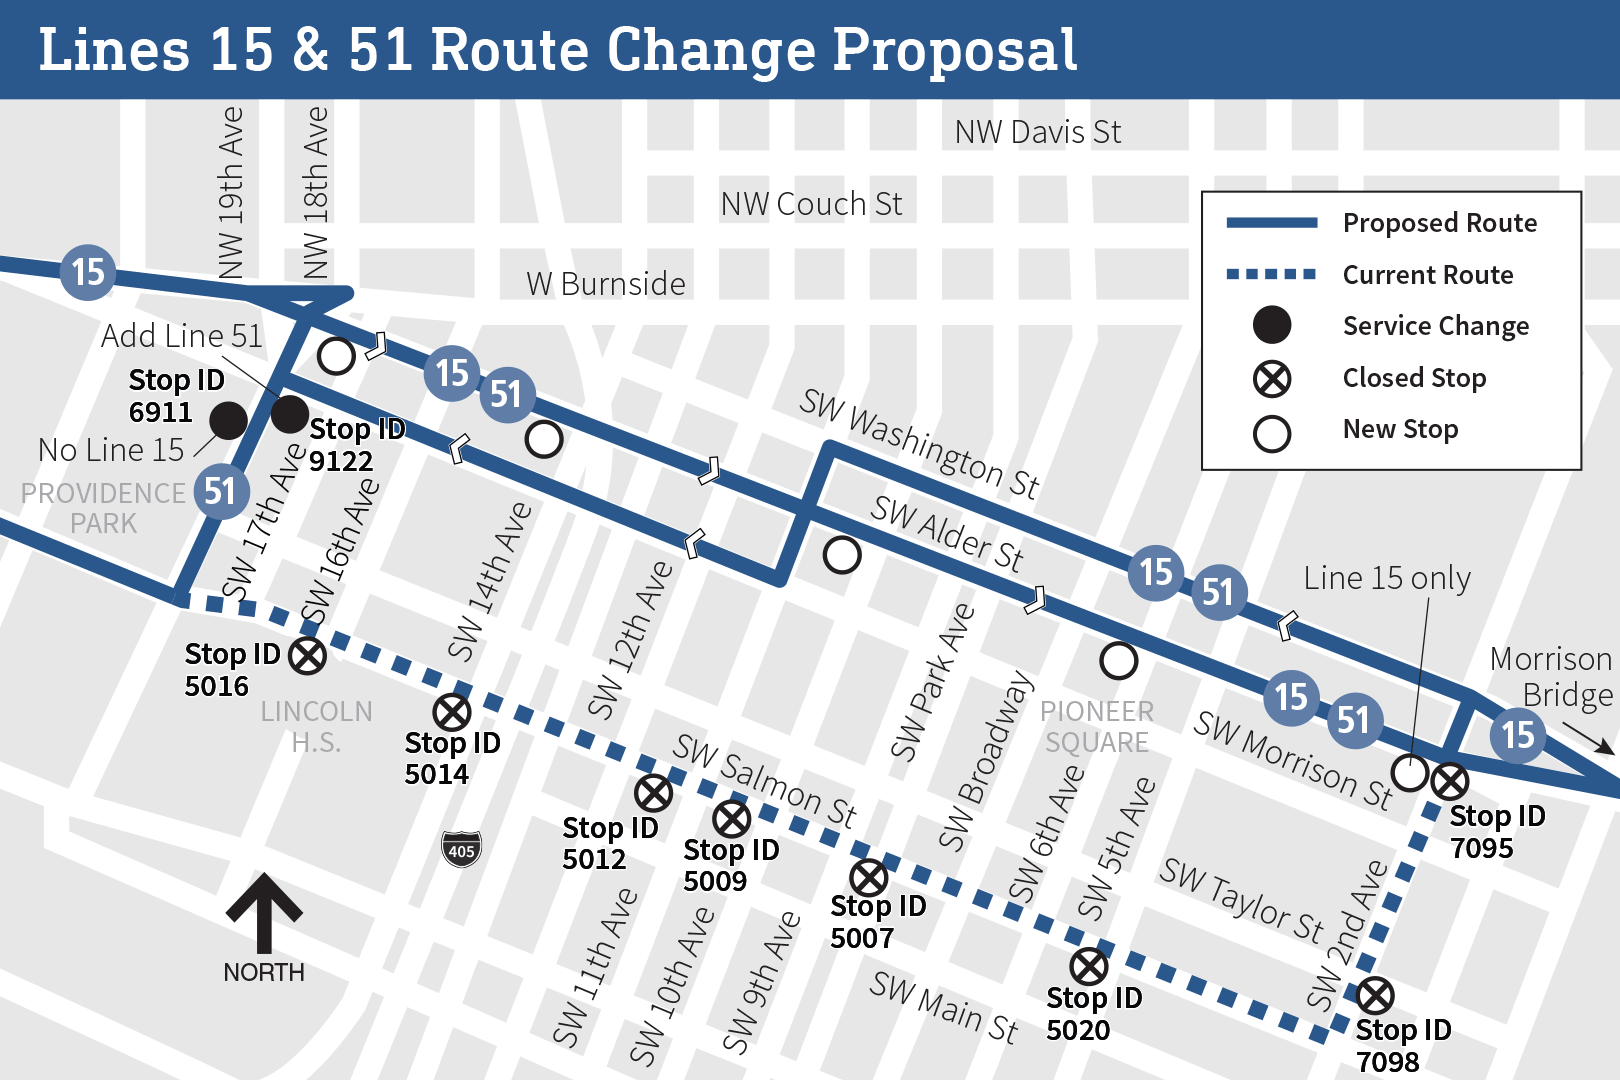 Lines 15 and 51 proposed change